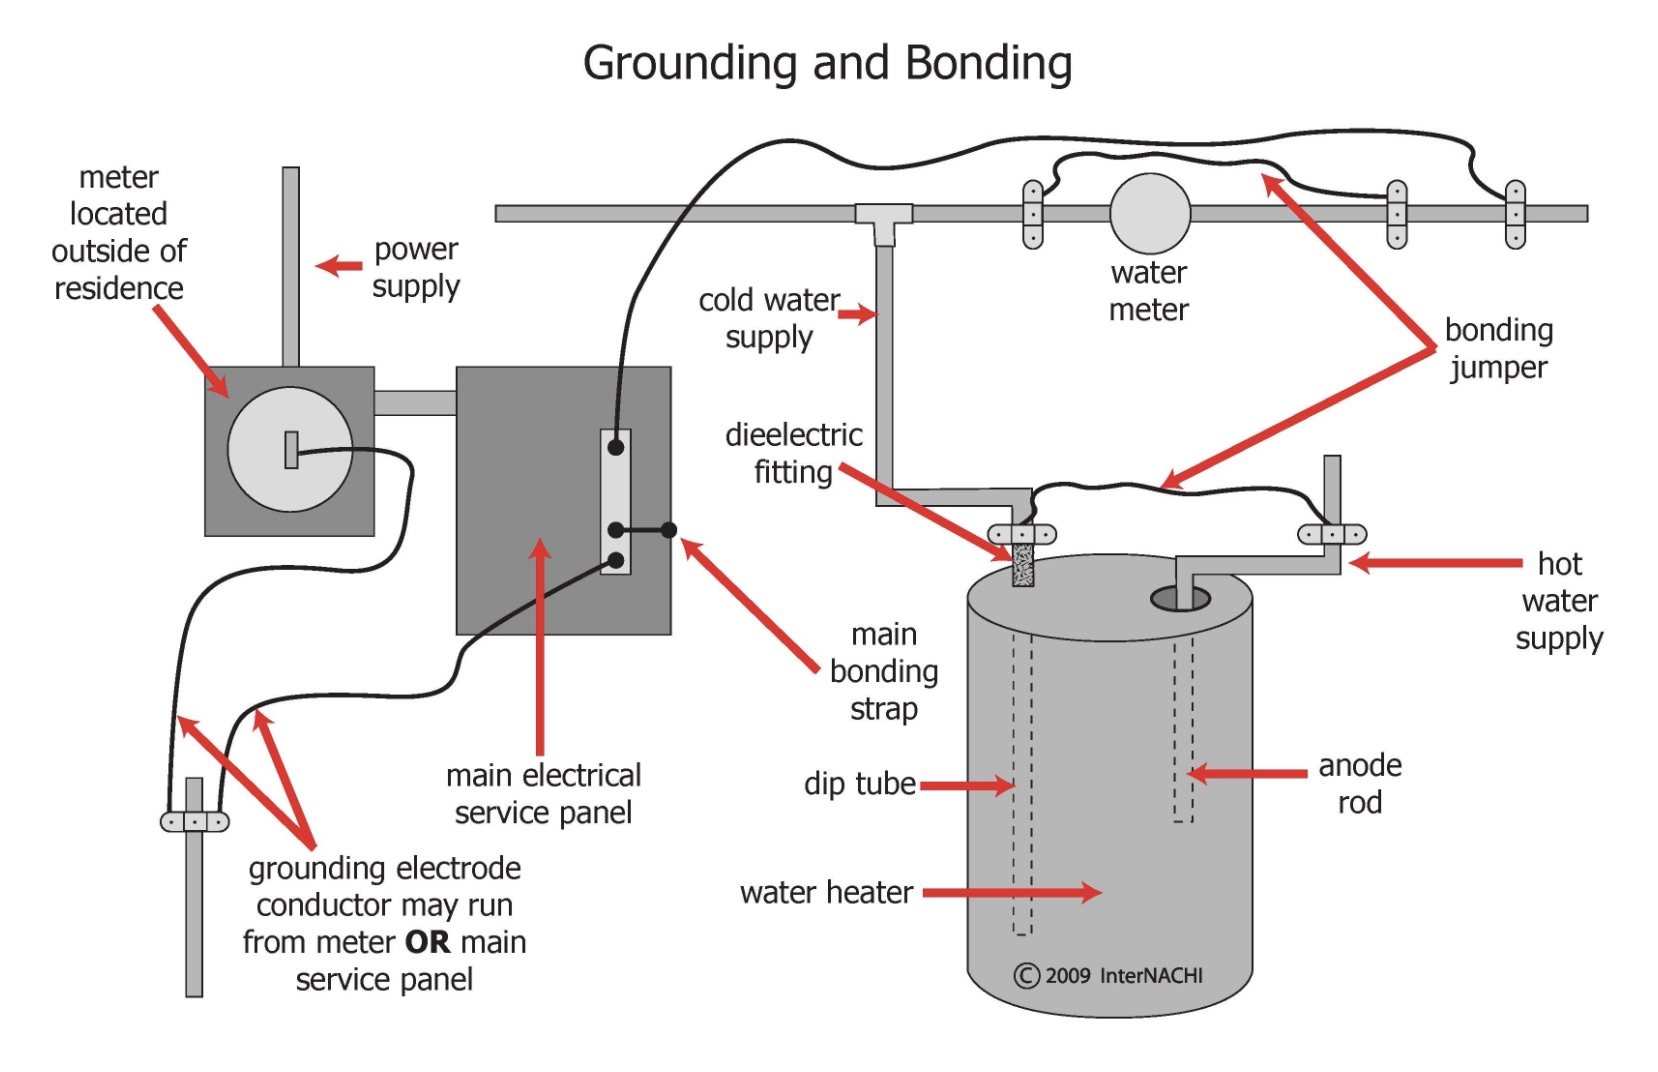 Inspecting Grounding and Bonding at Residential Swimming Pools - InterNACHI® | Pool Wiring Code Diagrams |  | InterNACHI